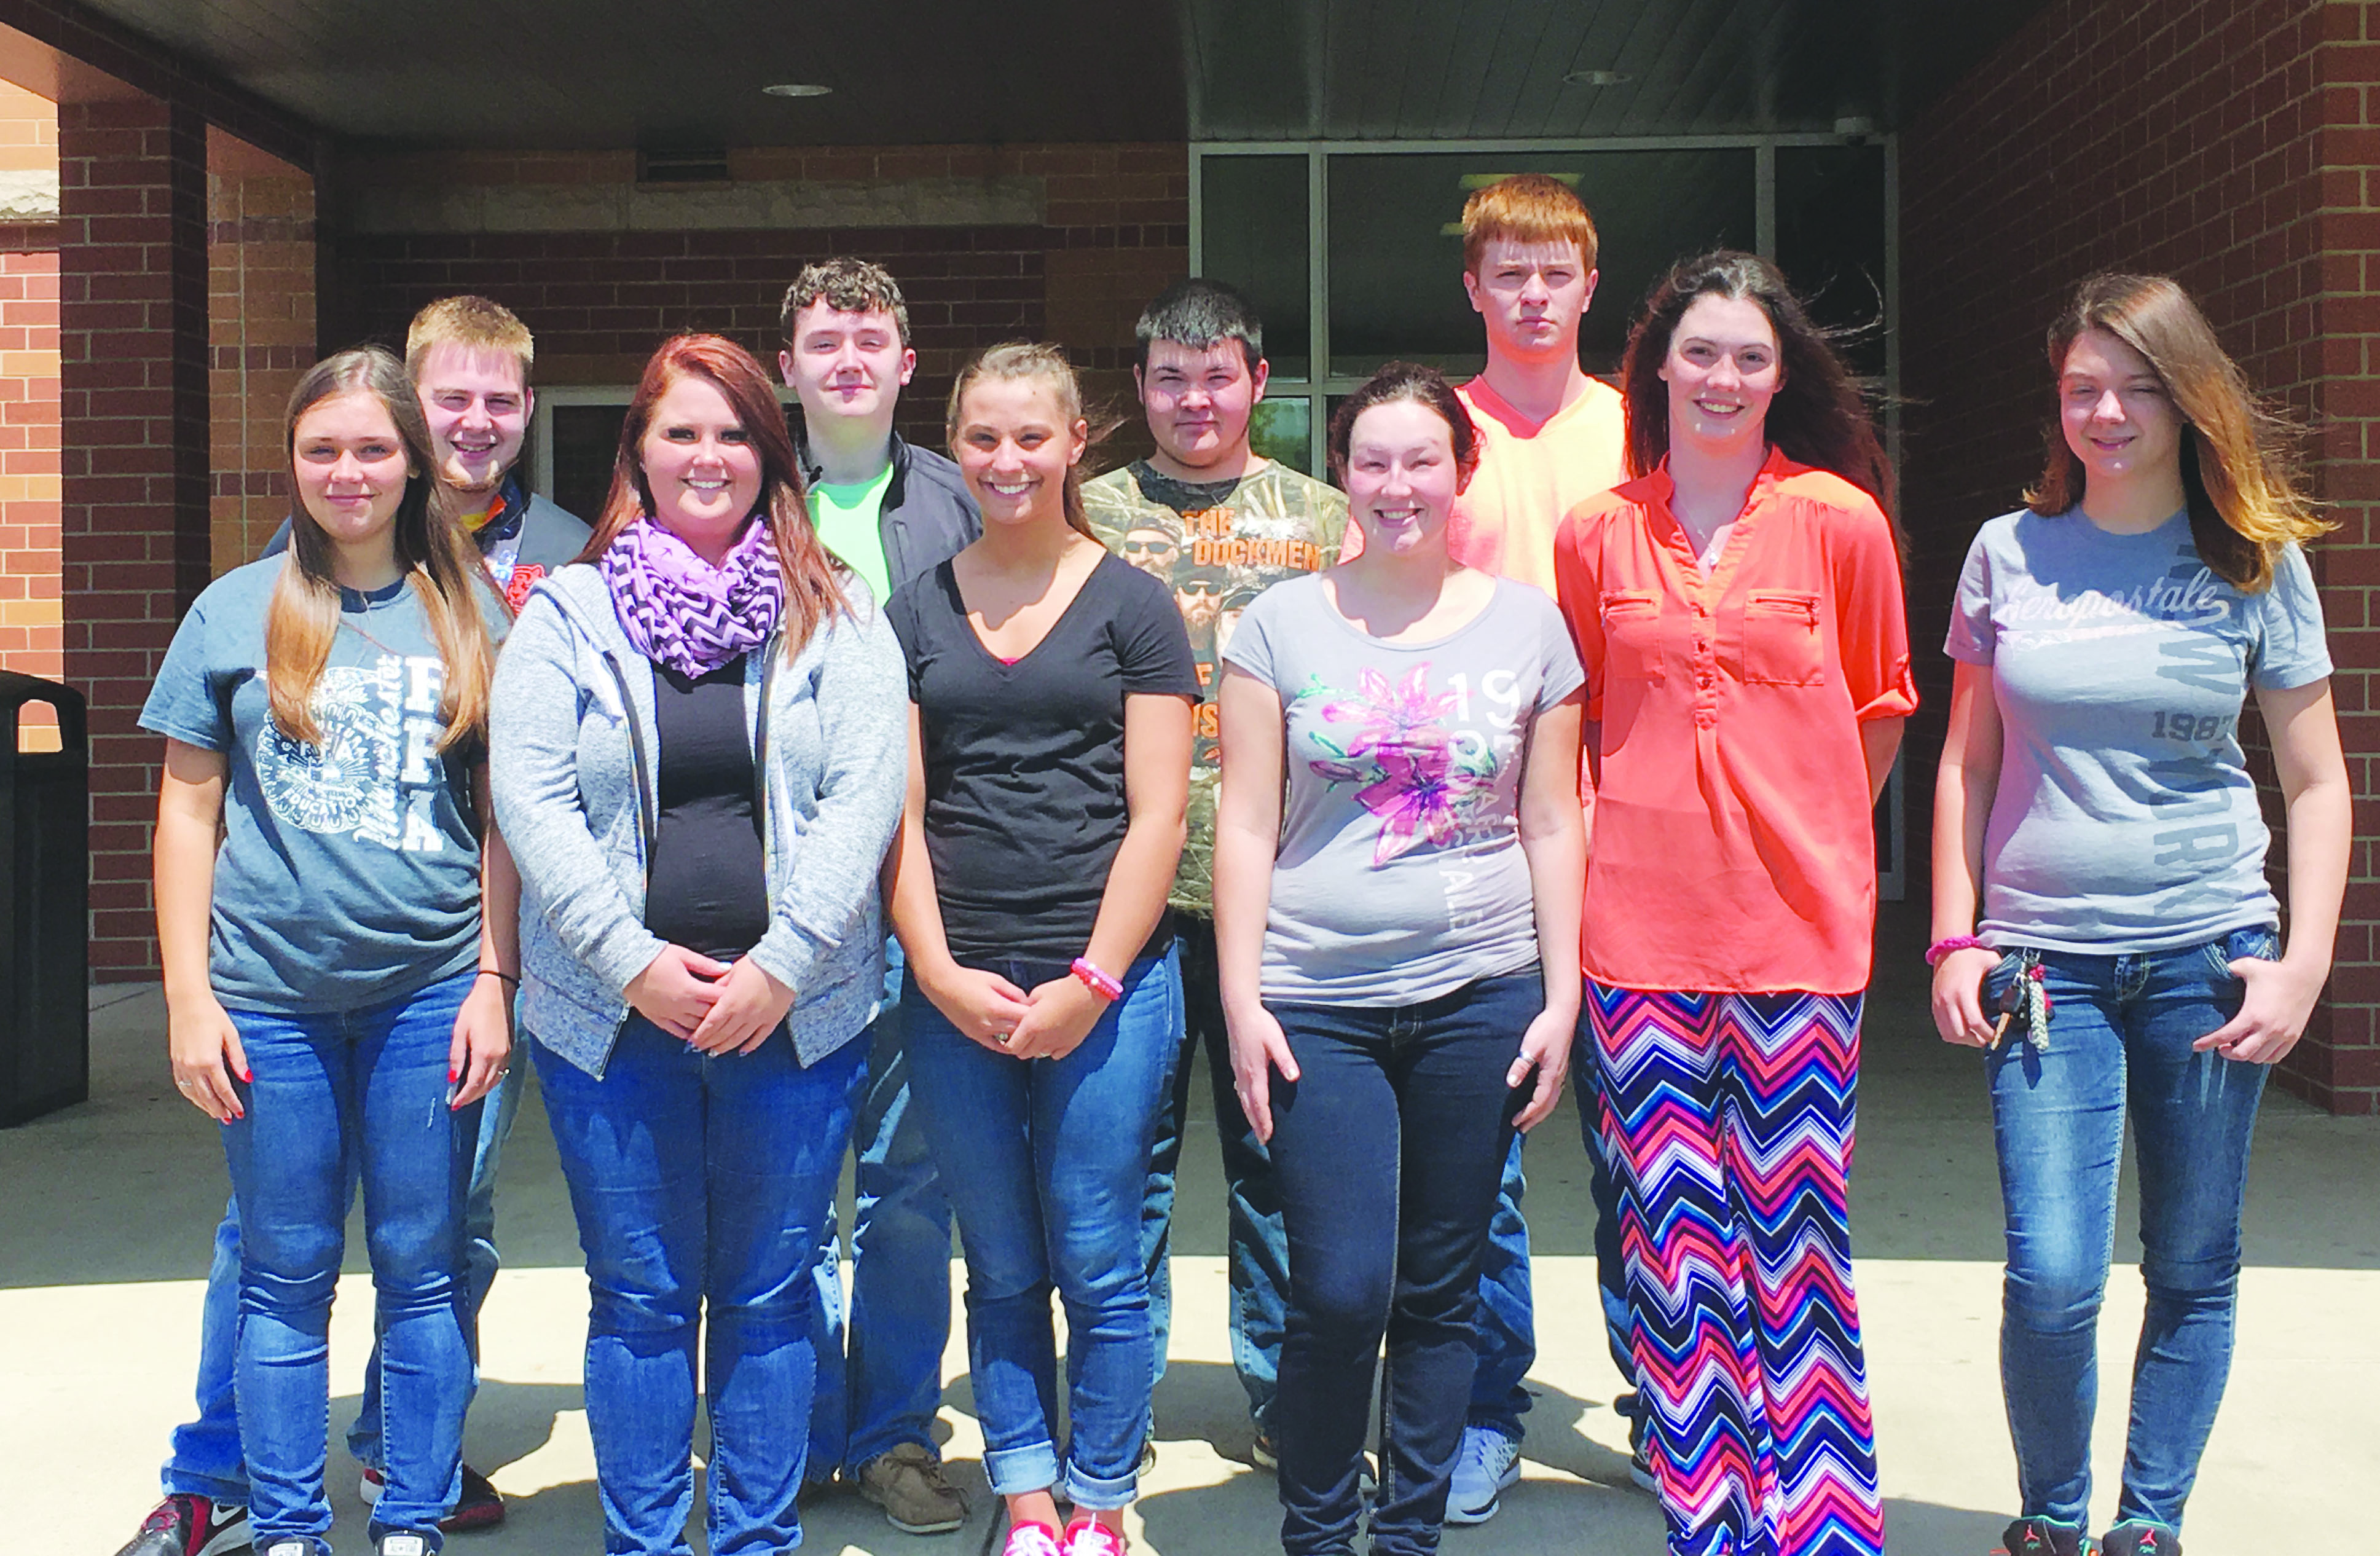 The MHS students who certified were: Back row, from left, Gabe Horsley, Jamison Wilkins, Austin Grooms, and Ryan Dryden; Front row, from left, Montana Hamilton, Natasha Curtis, Kayleigh Robinson, Cassidy Boone, Raeanna Stamm, and Veronica Montgomery.